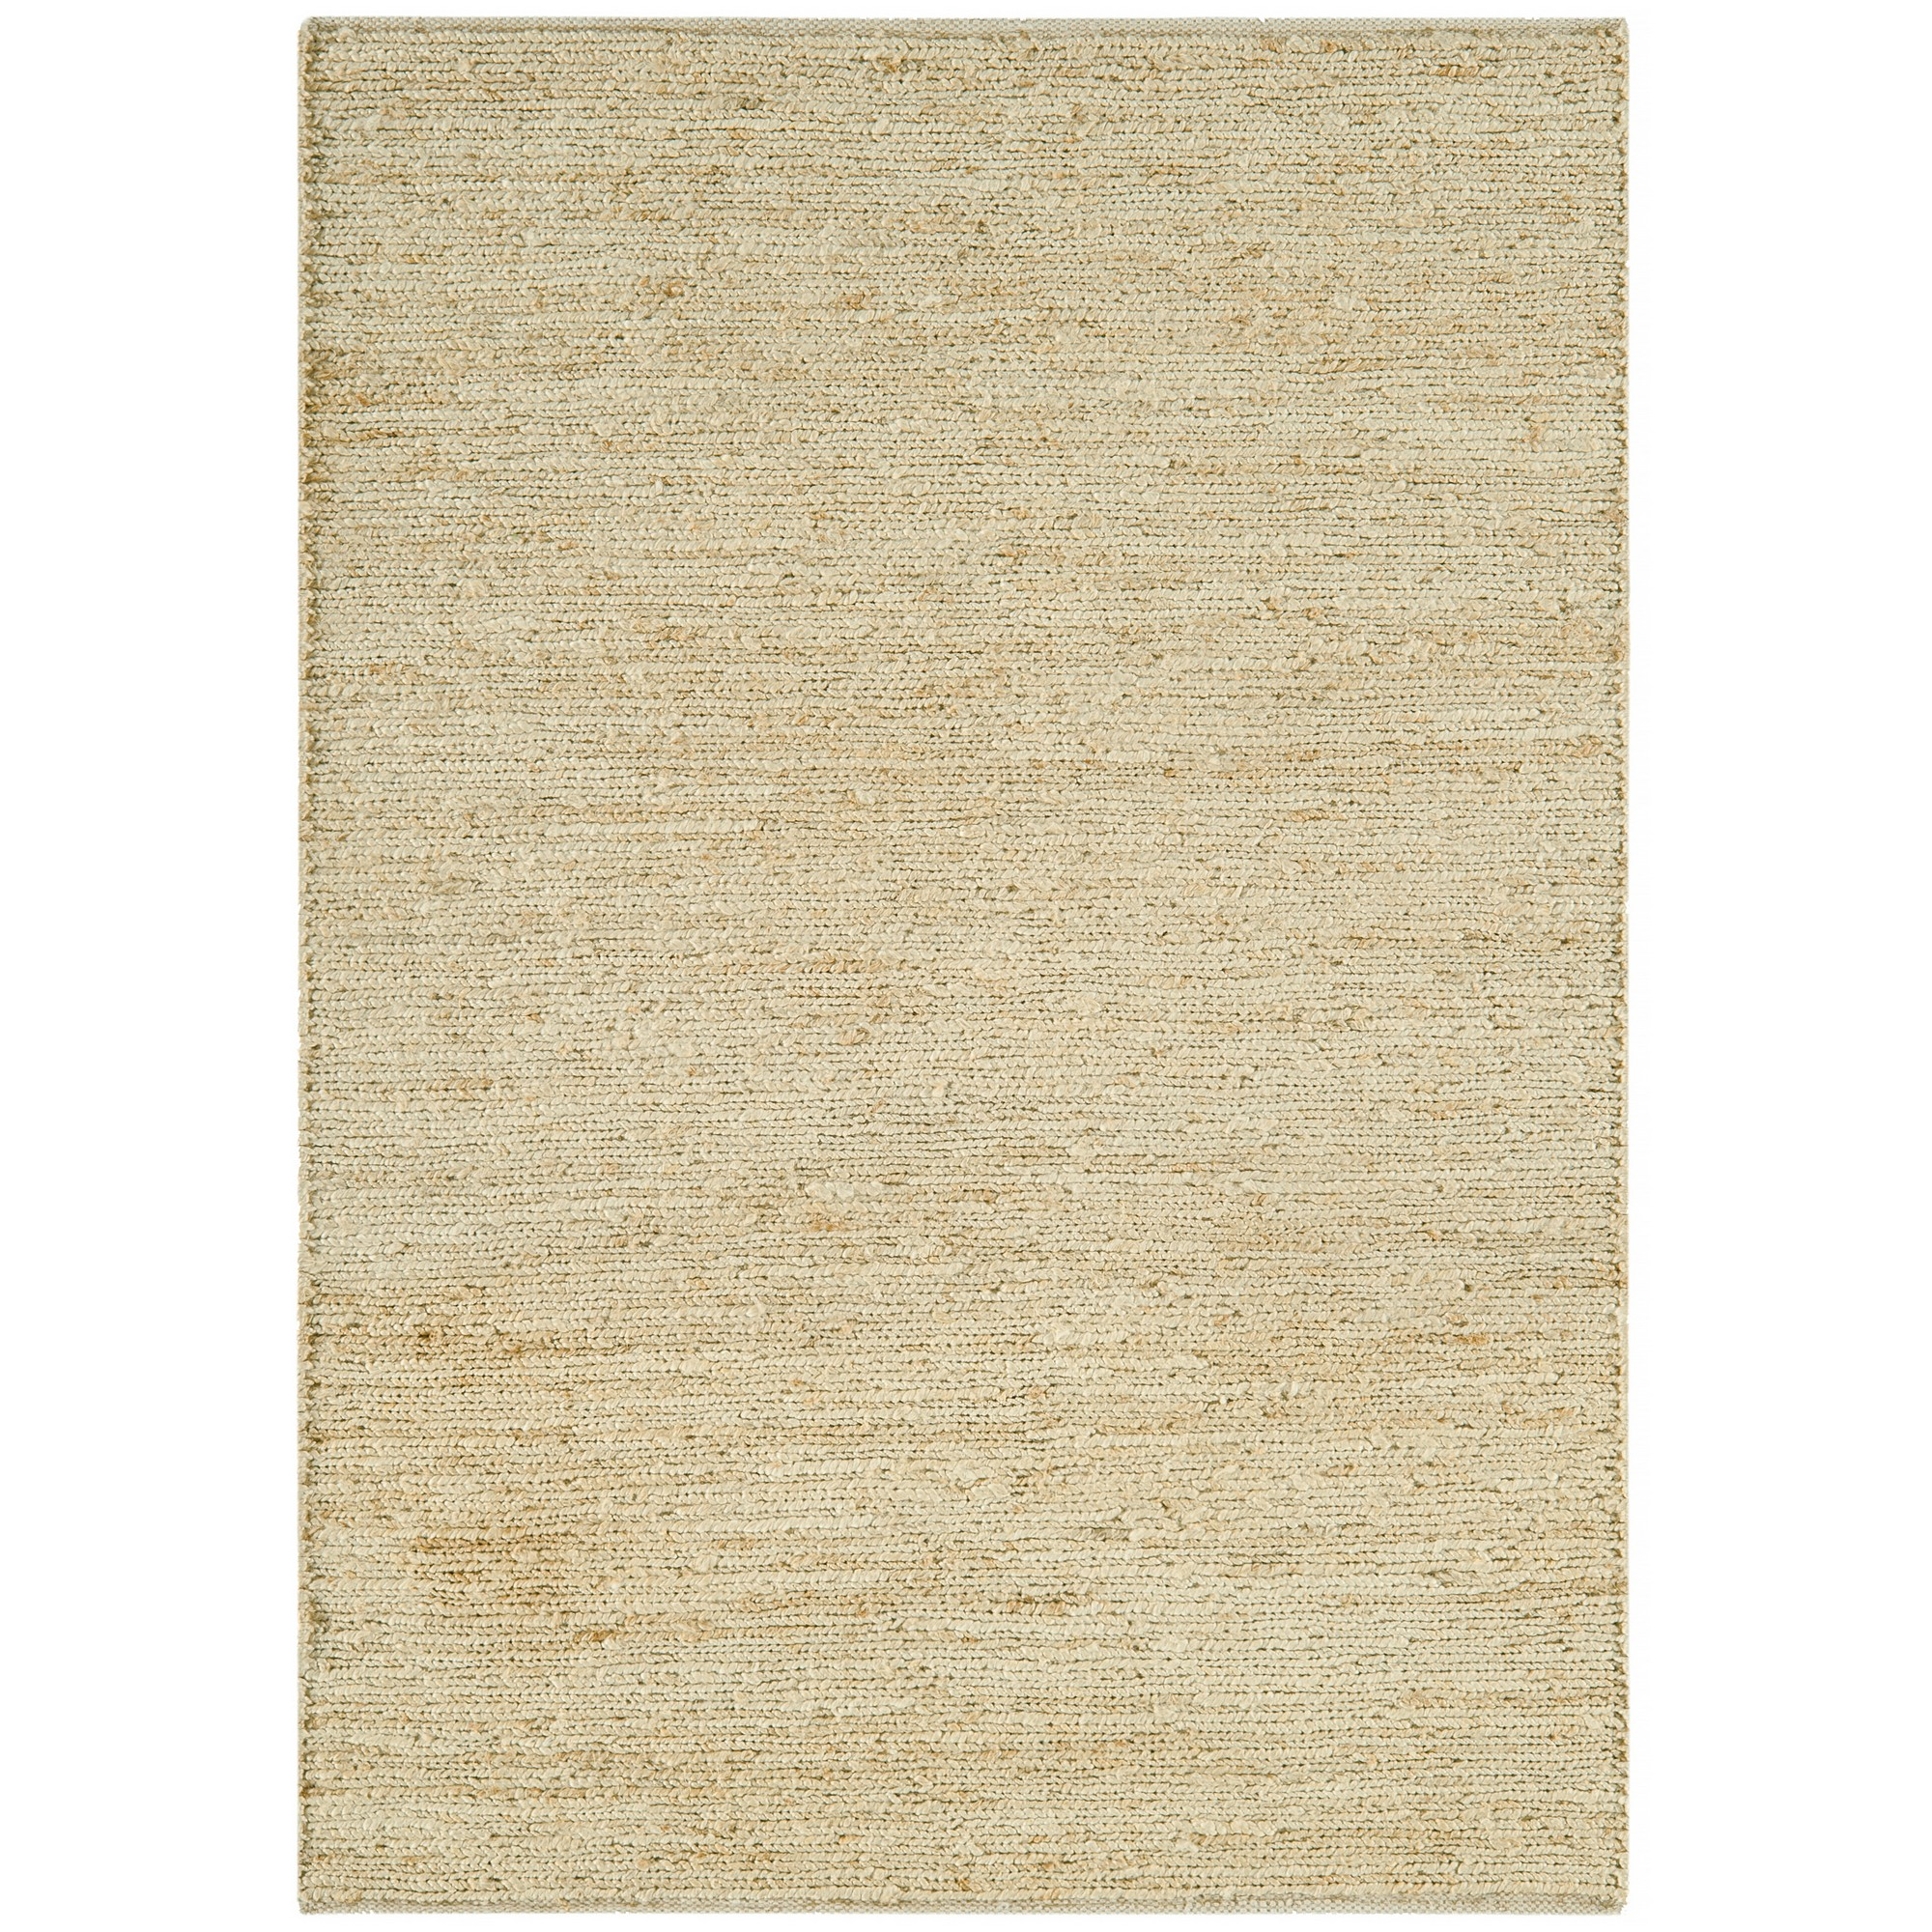 Jute Soumak Rugs in Straw